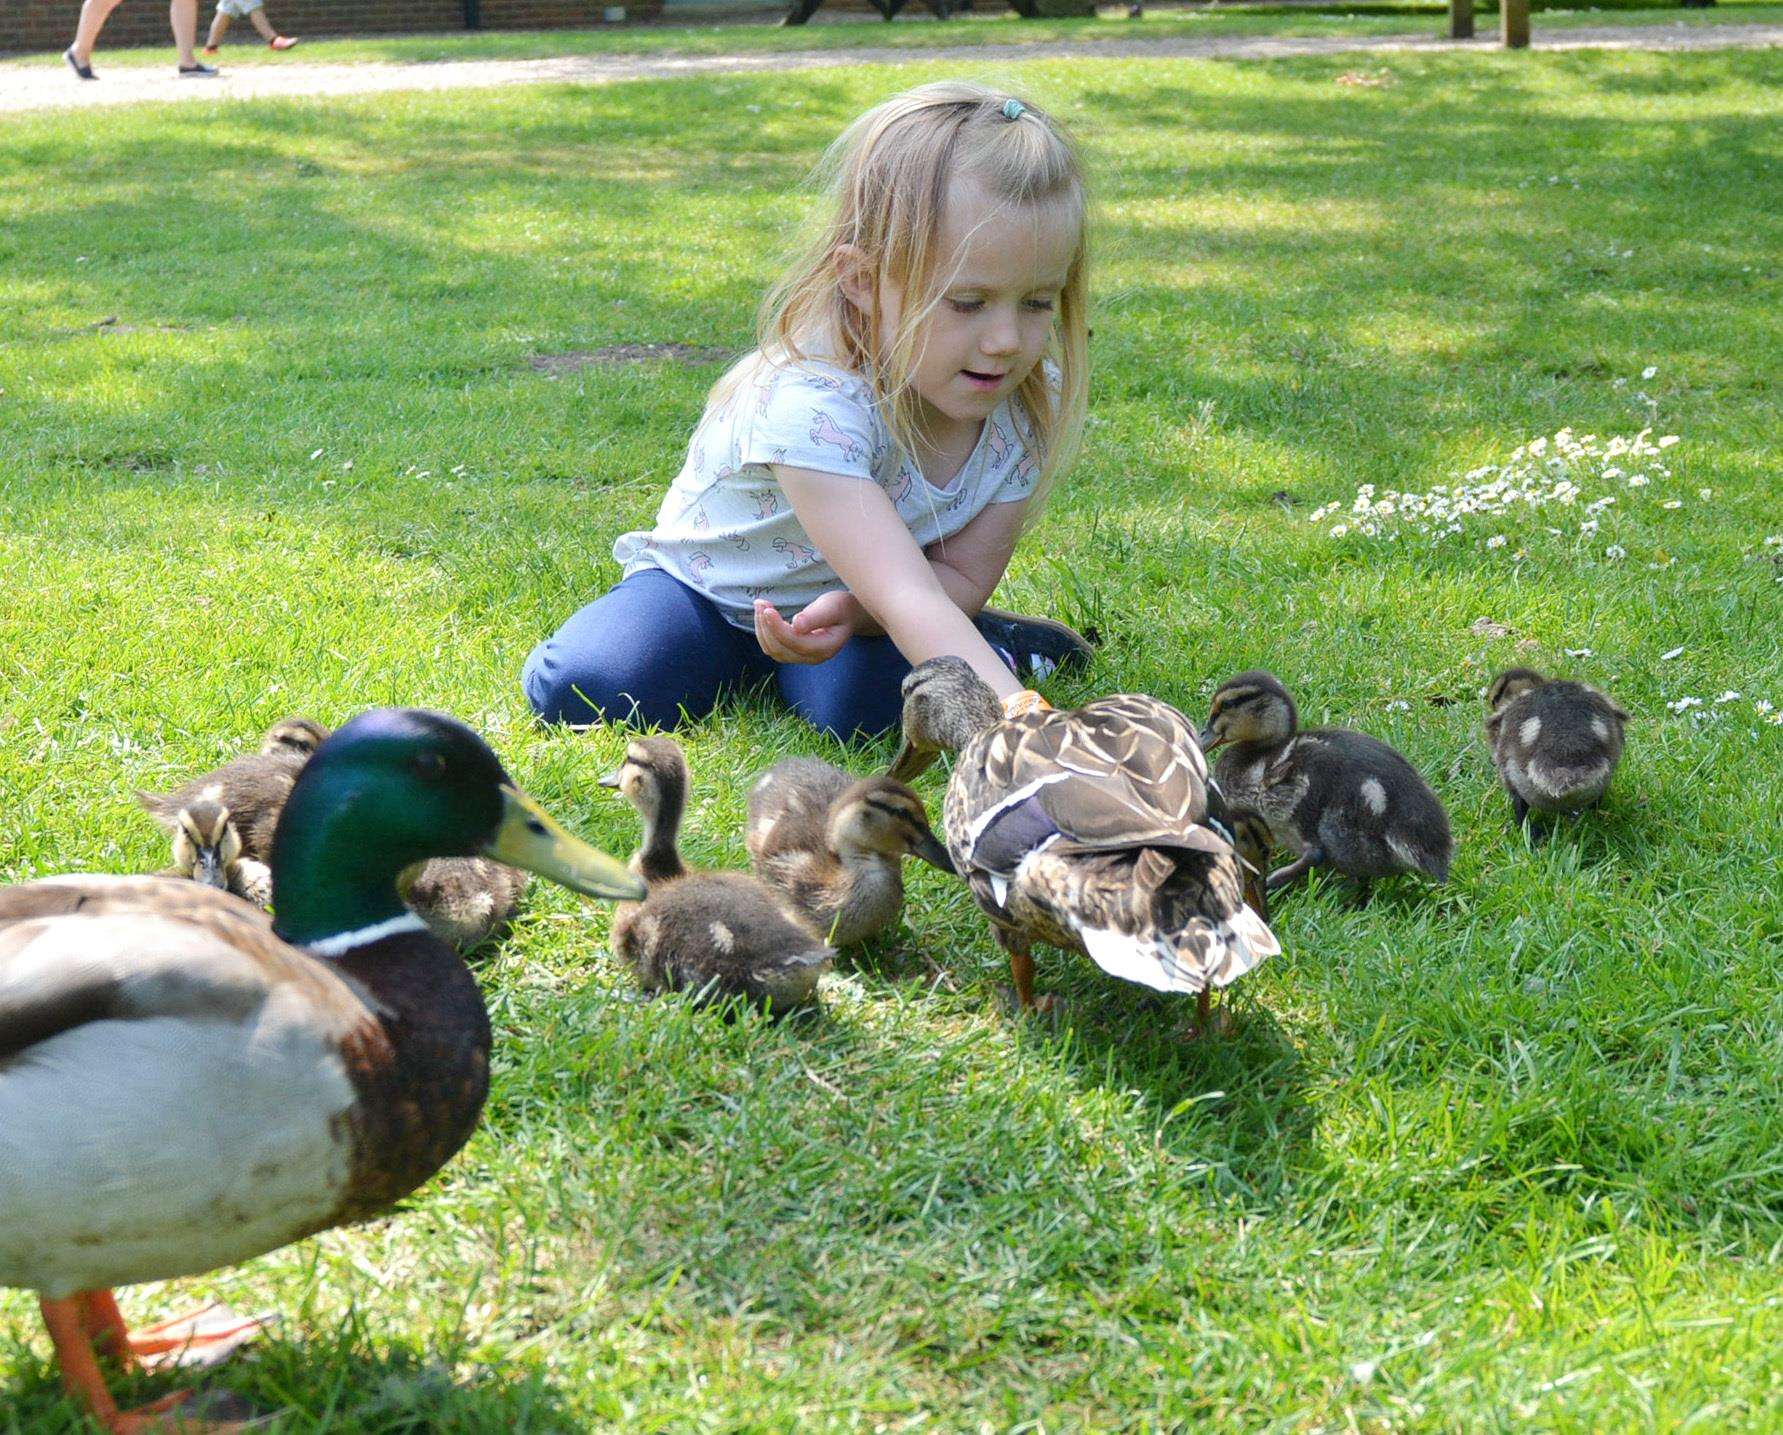 Three-year-old Caitlyn Cross gets to stroke some friendly ducklings (2265903)